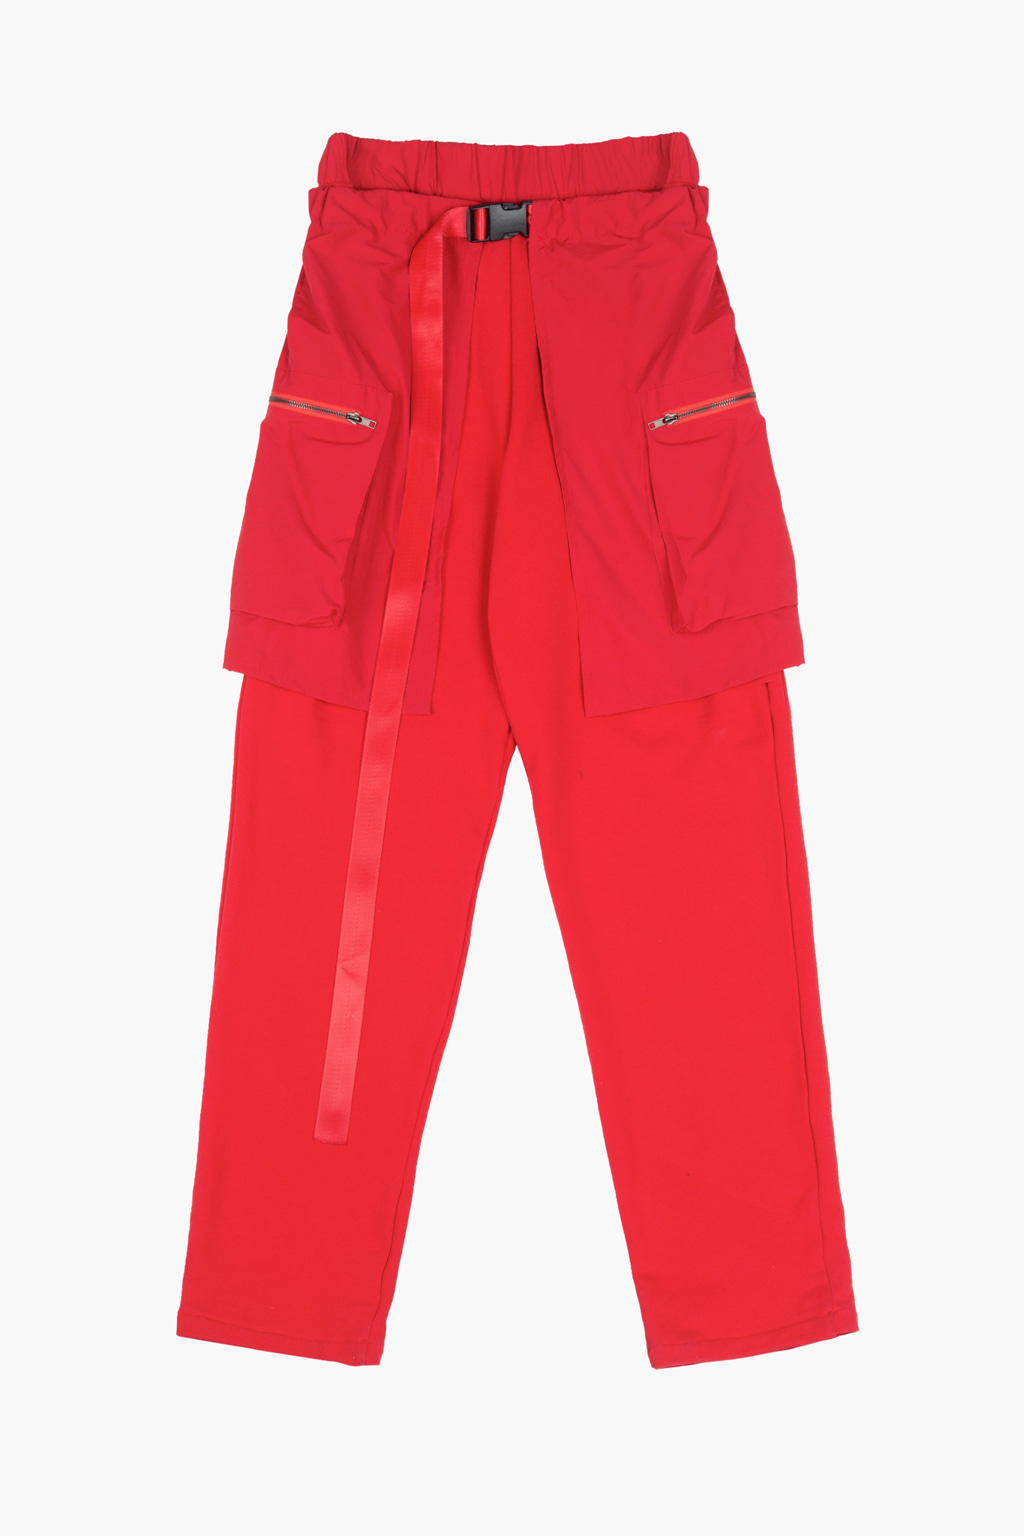 Layered Utility Cargo Skirt Lounge Pants - red